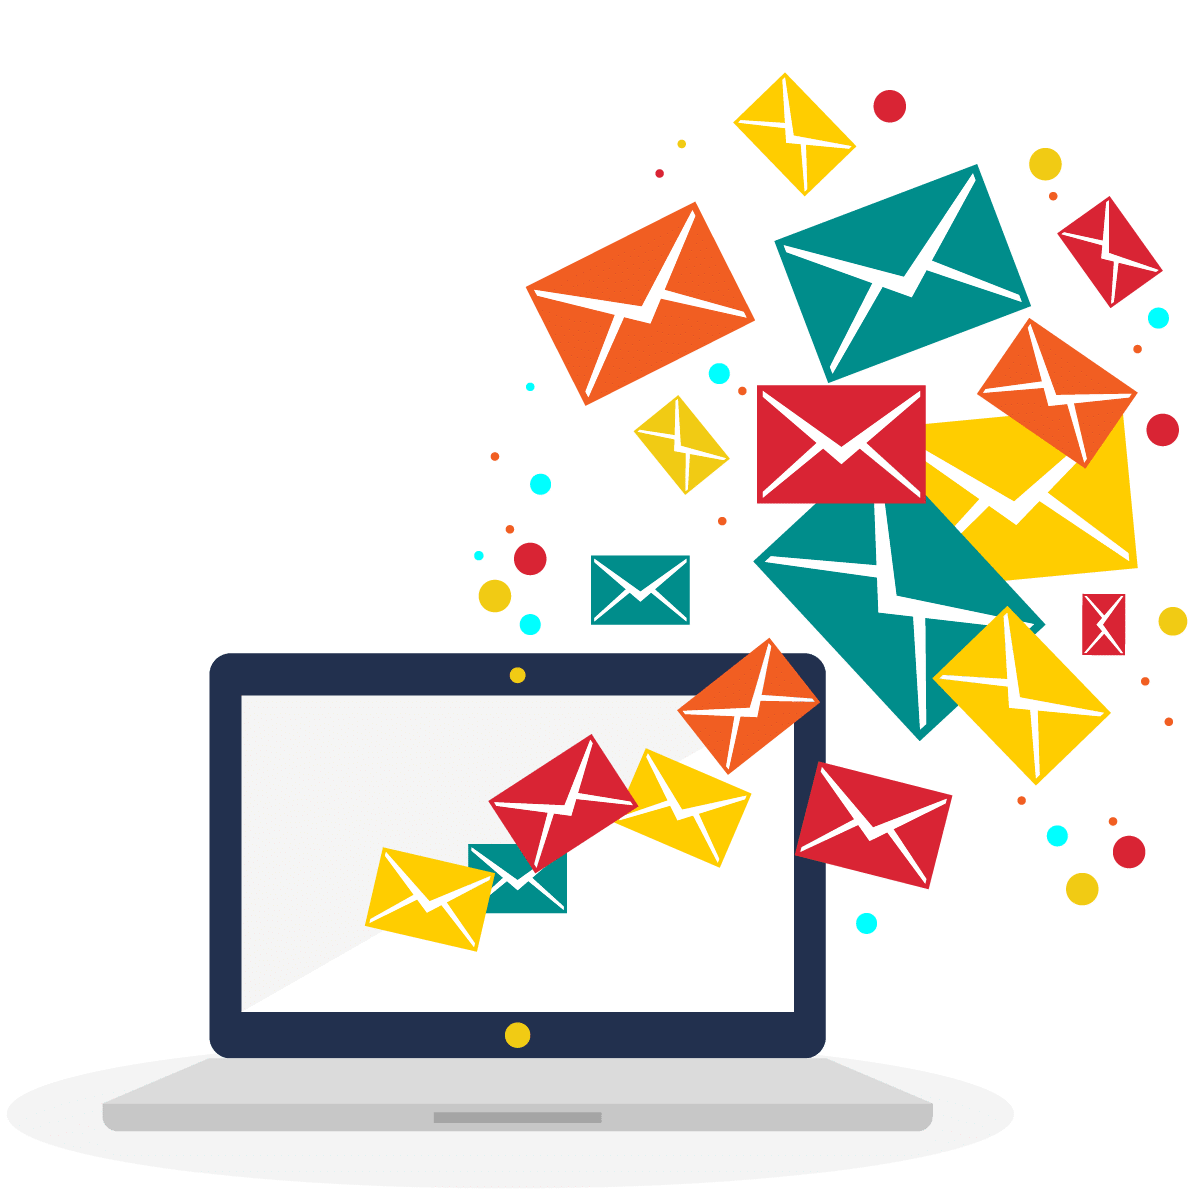 Email clipart email outlook. Why you should not